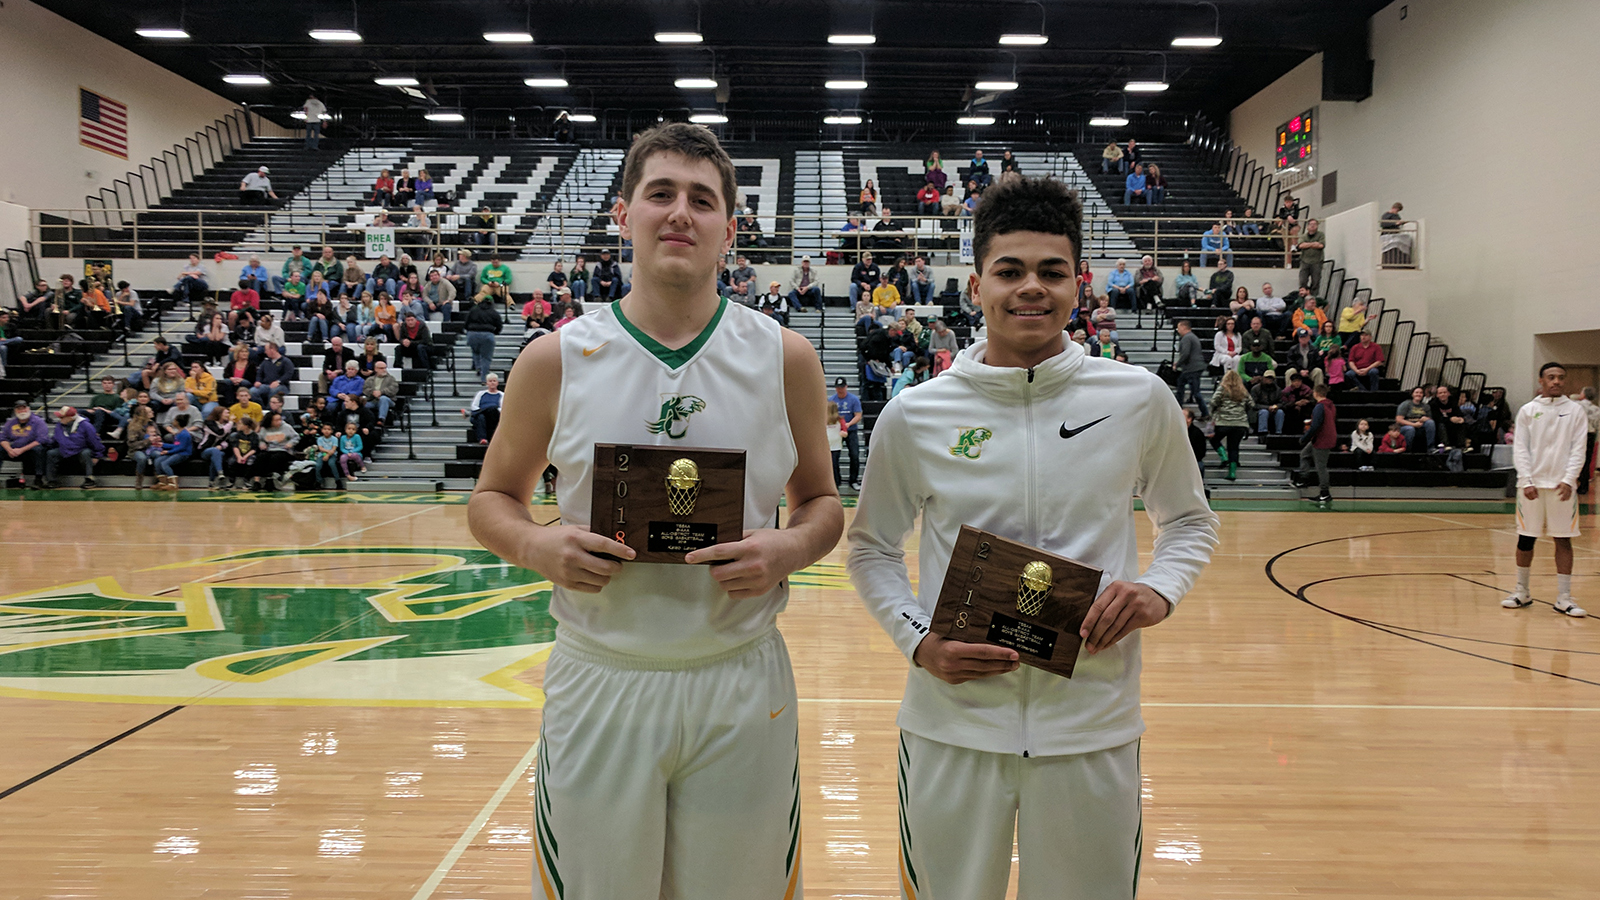 Rhea County Basketball places Wilkerson & Laws on All-District